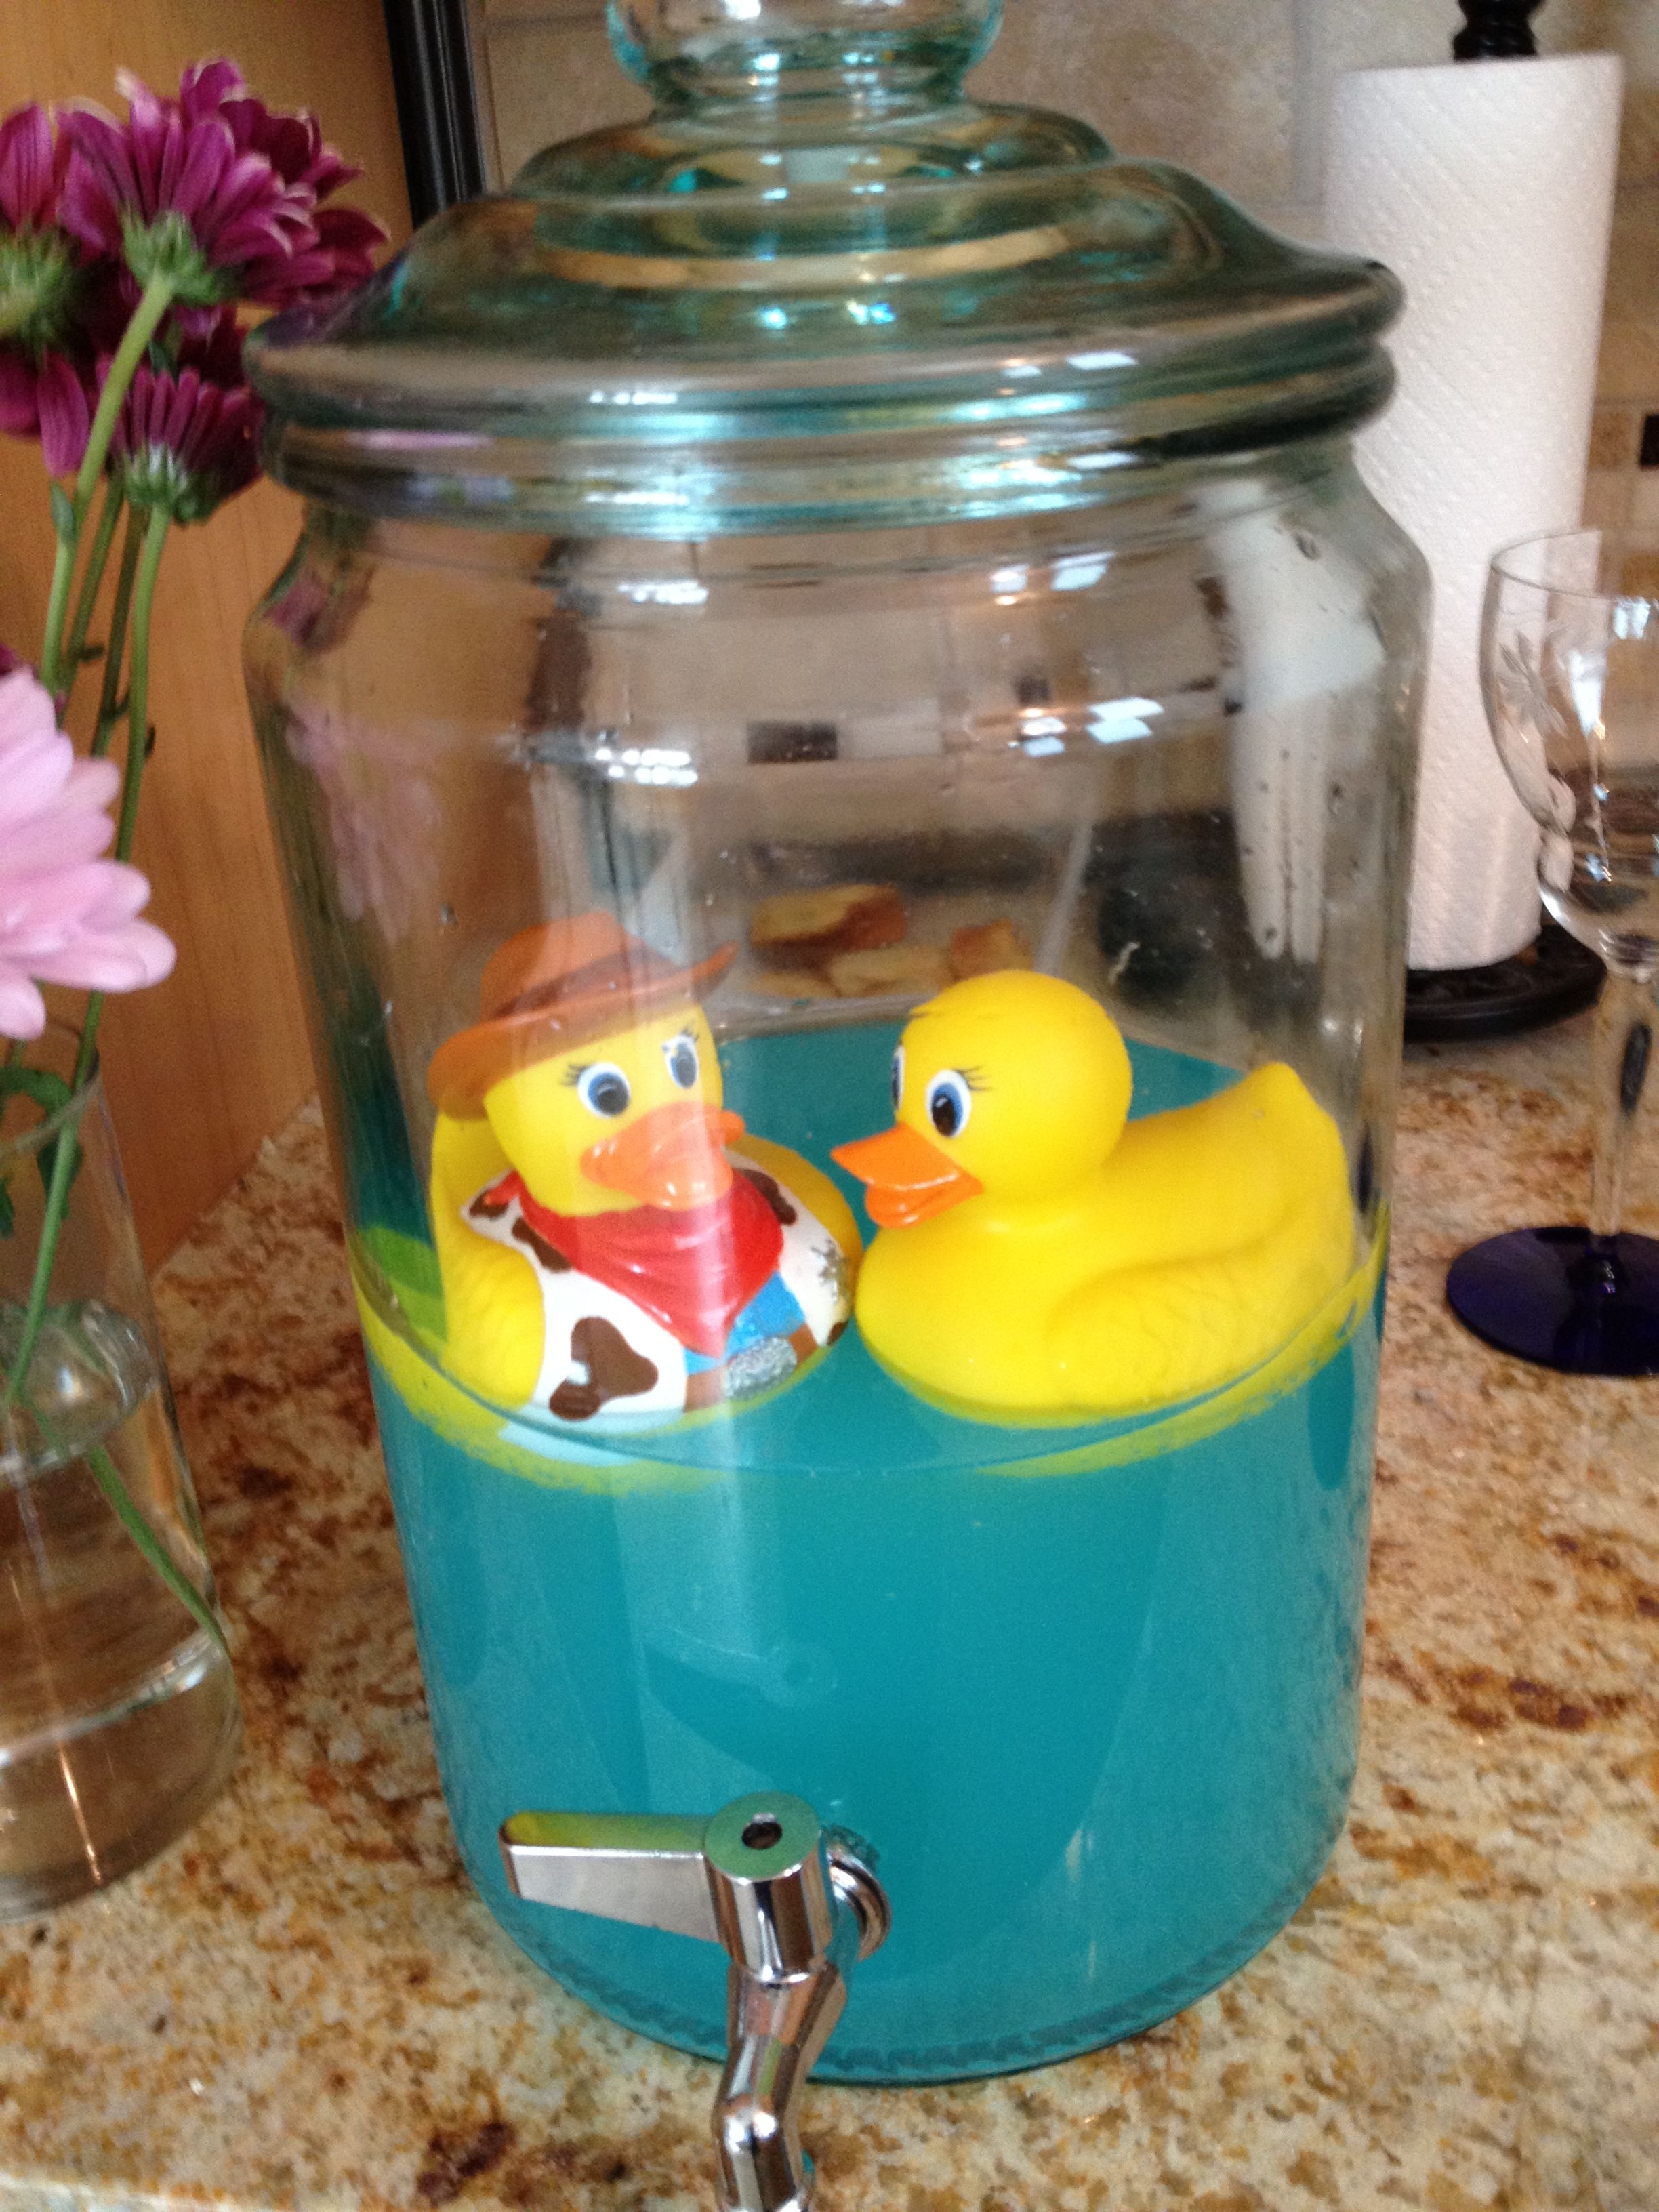 Ducky Baby Shower Punch Part - 39: Baby Shower Punch! I Fear That Punch Tastes Terrible, But I Could Tweak It